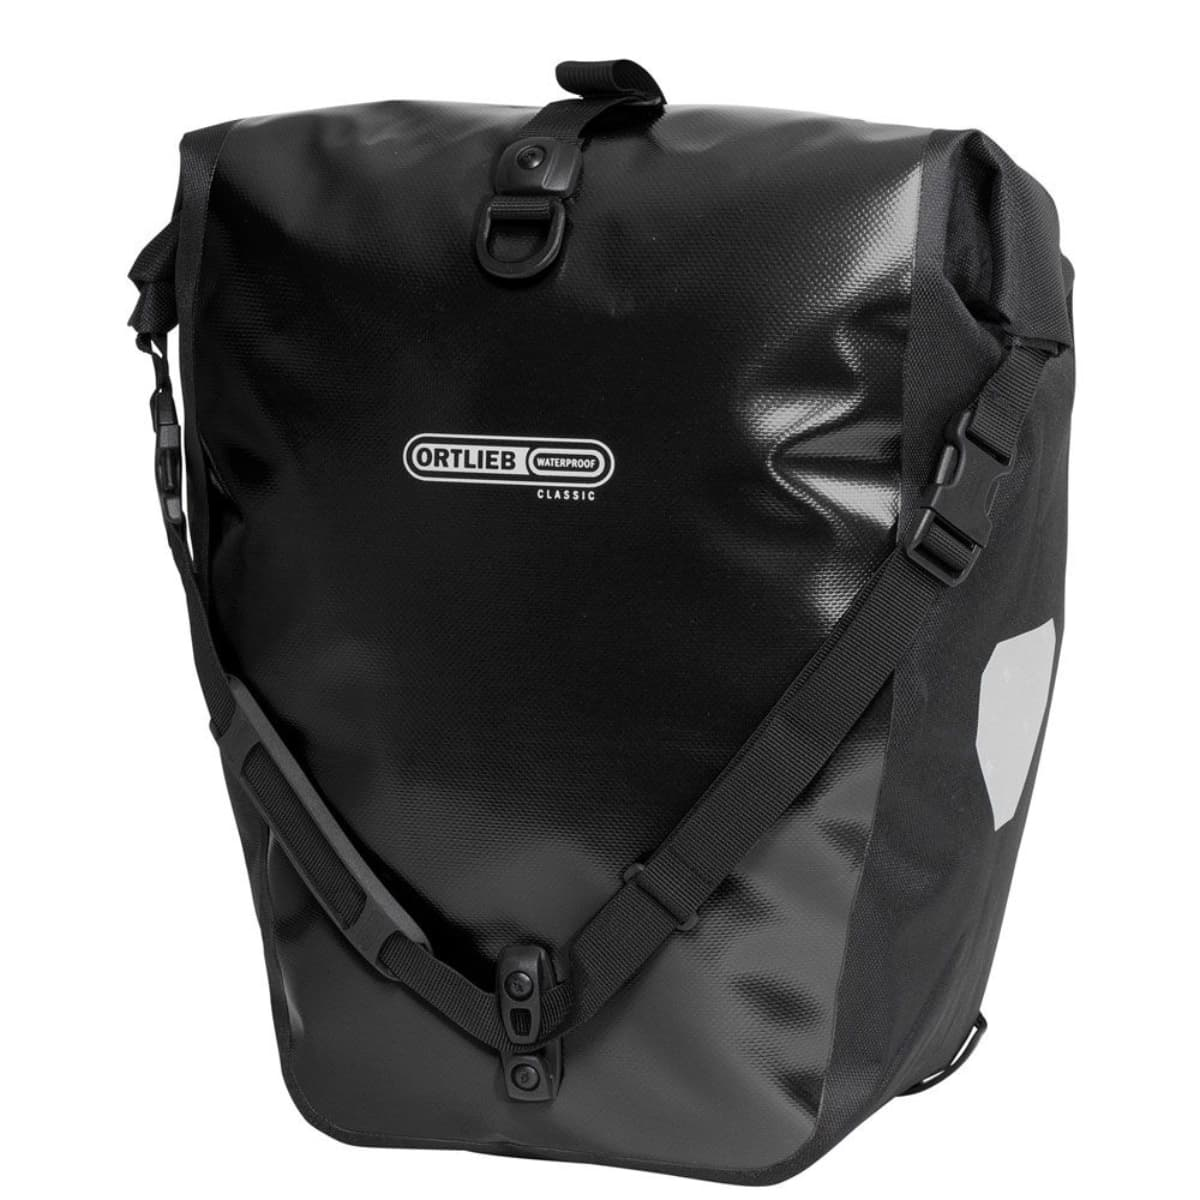 SACOCHES ORTLIEB BACK ROLLER CLASSIC 40L